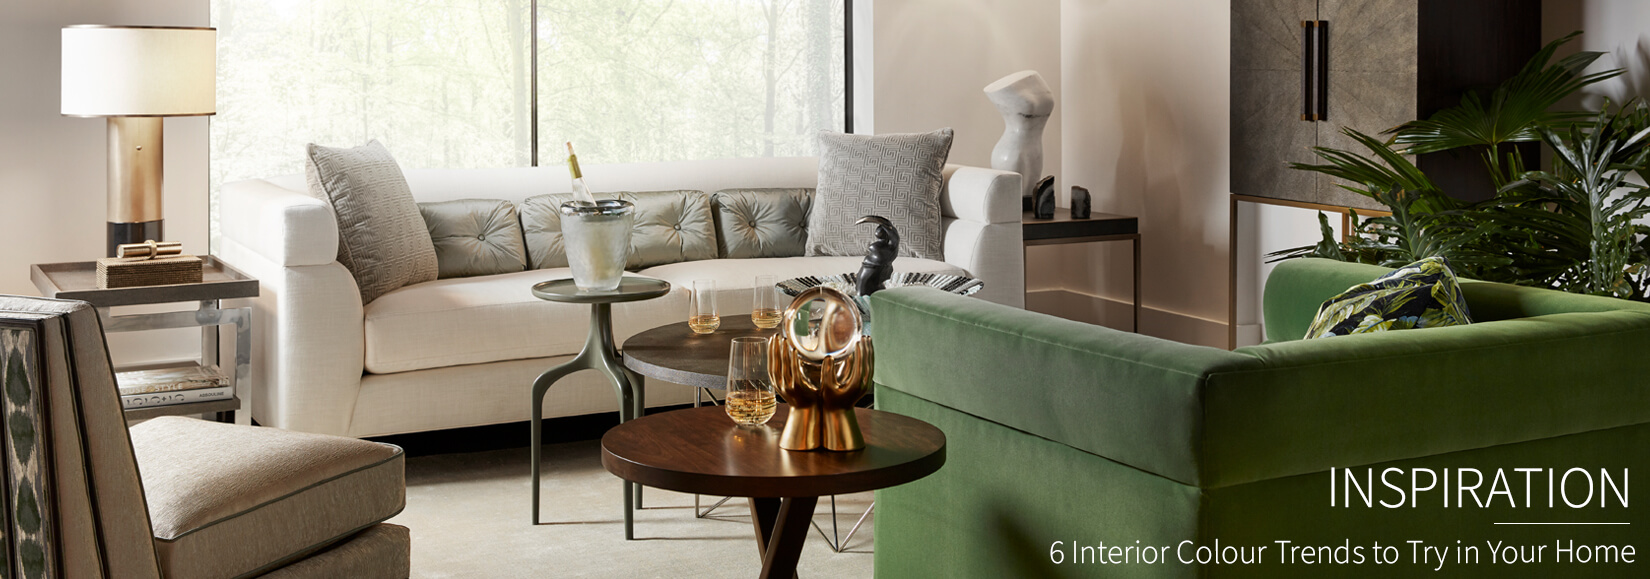 6 Interior Colour Trends to Try in Your Living Room, Bedroom and More